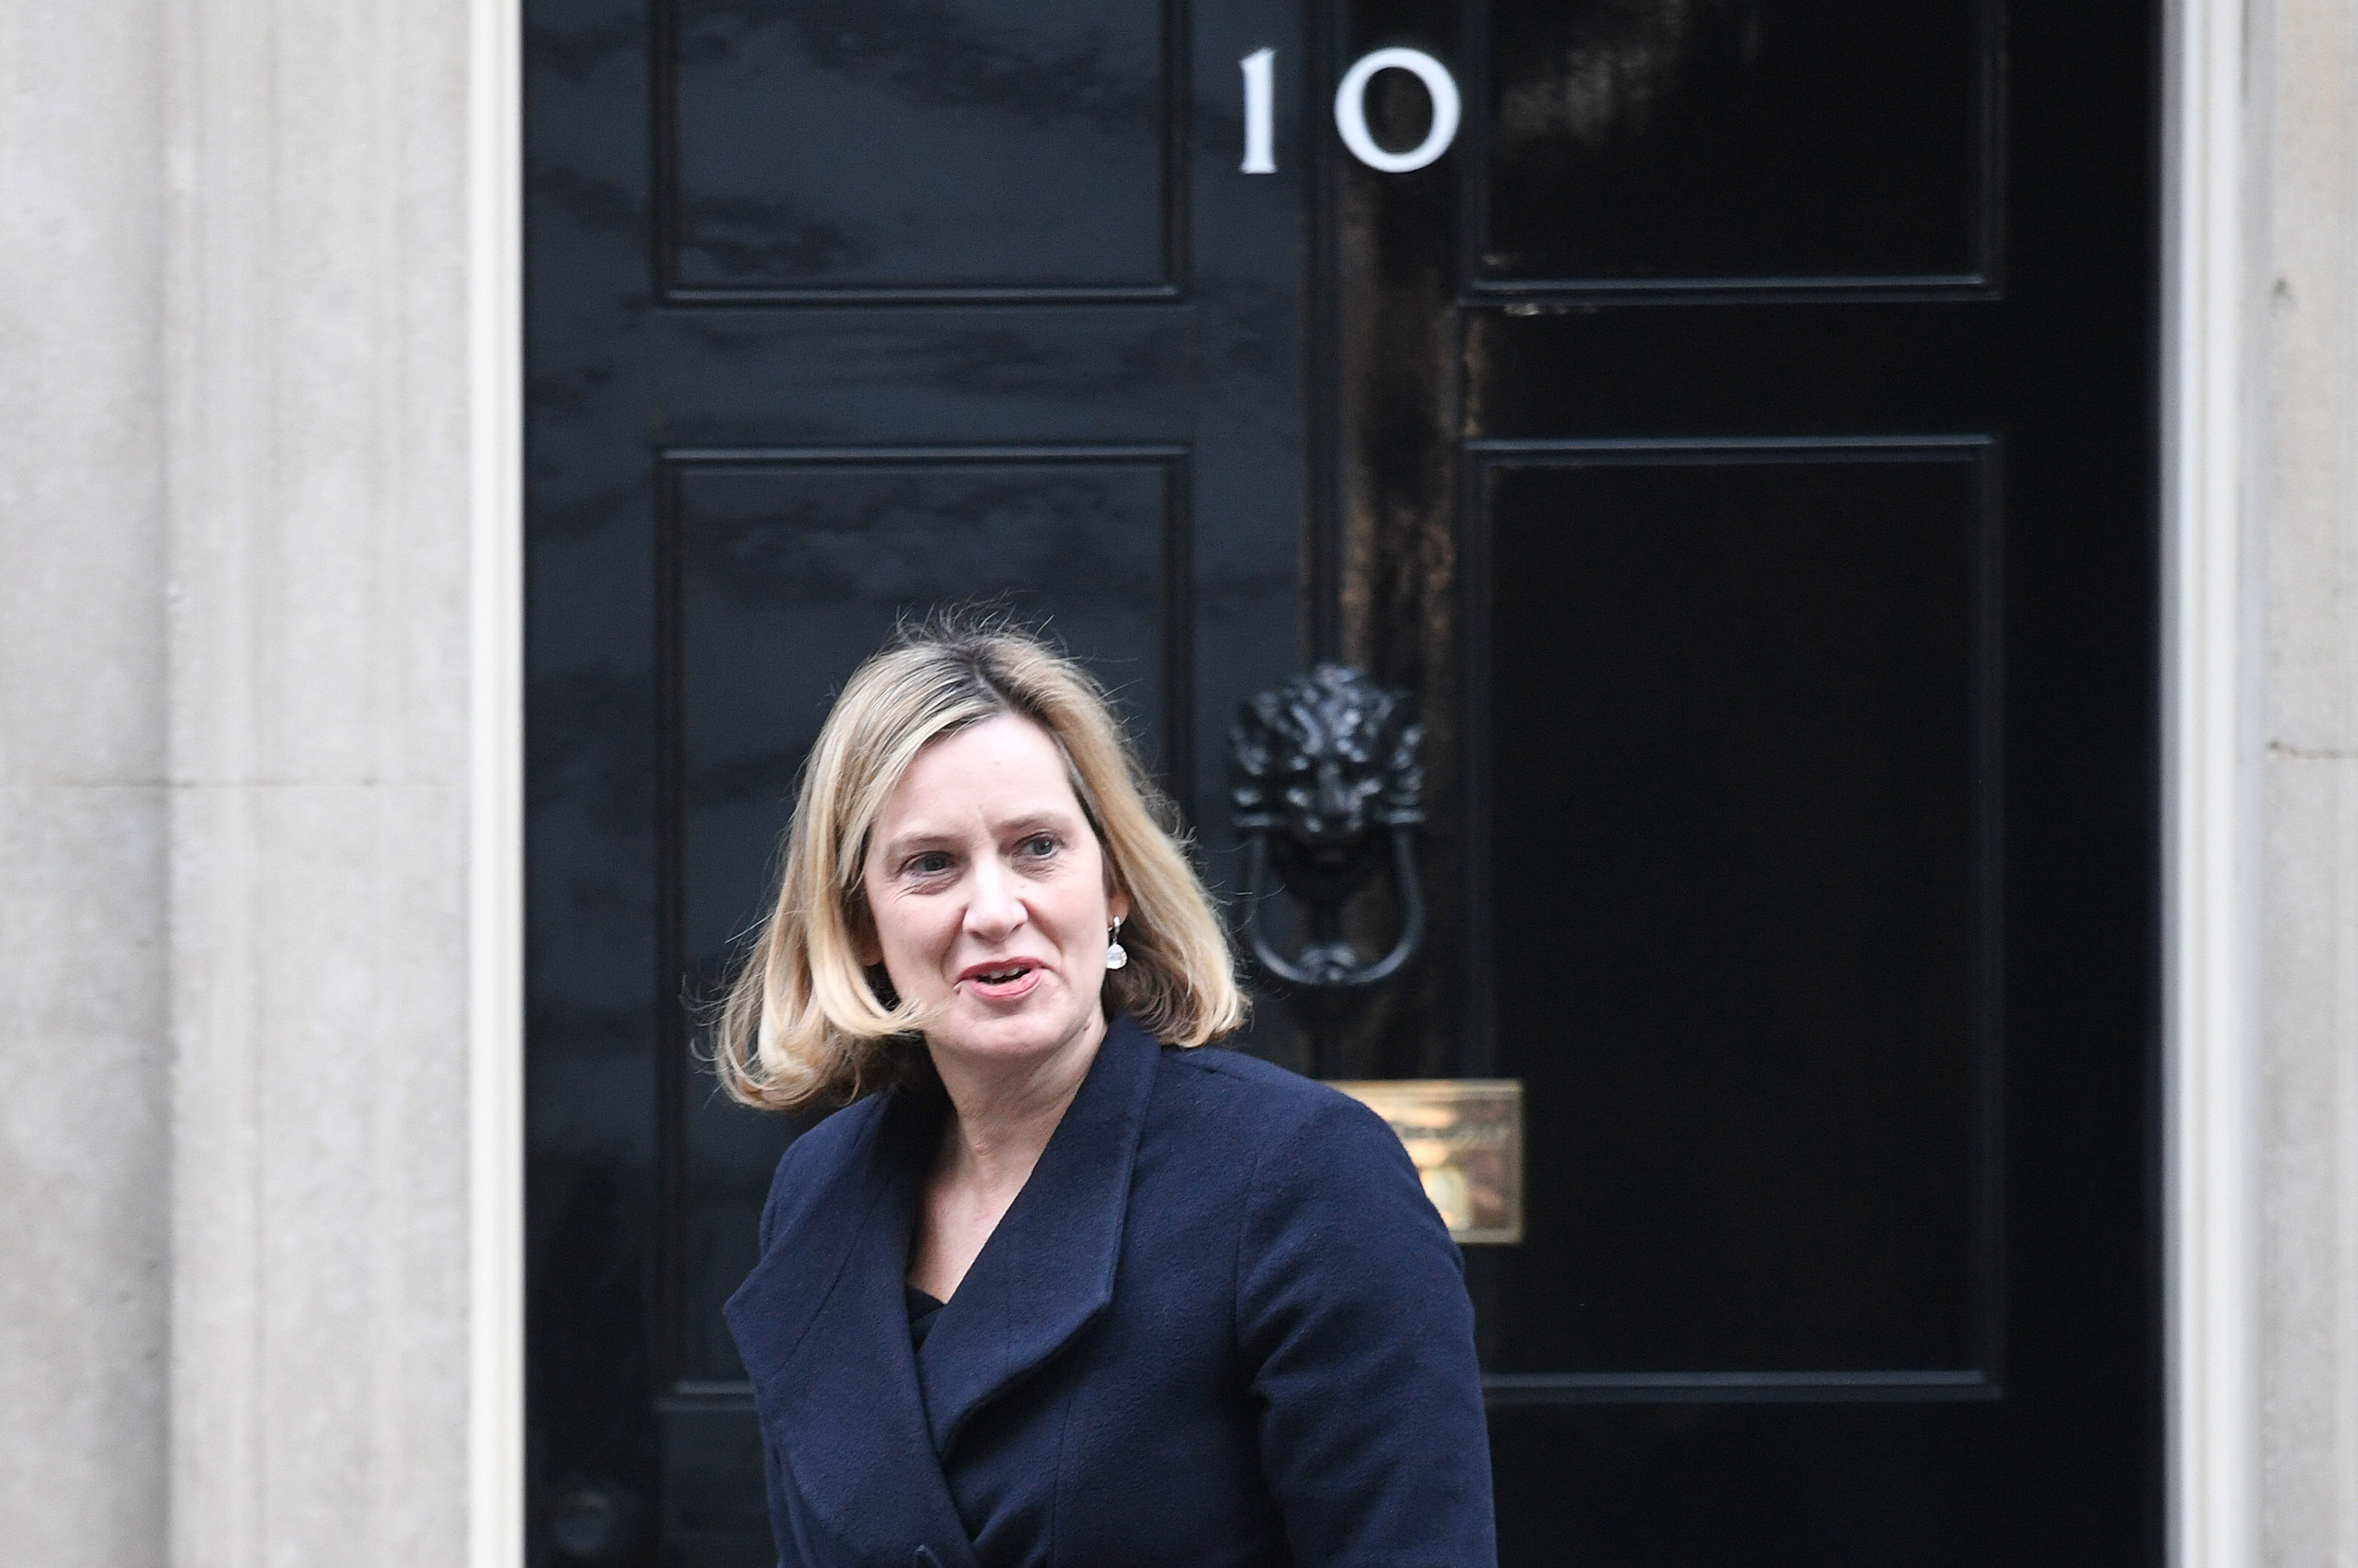 Work and Pensions Secretary Amber Rudd leaves 10 Downing Street, London, after a meeting of the cabinet. (Stefan Rousseau/PA Wire).